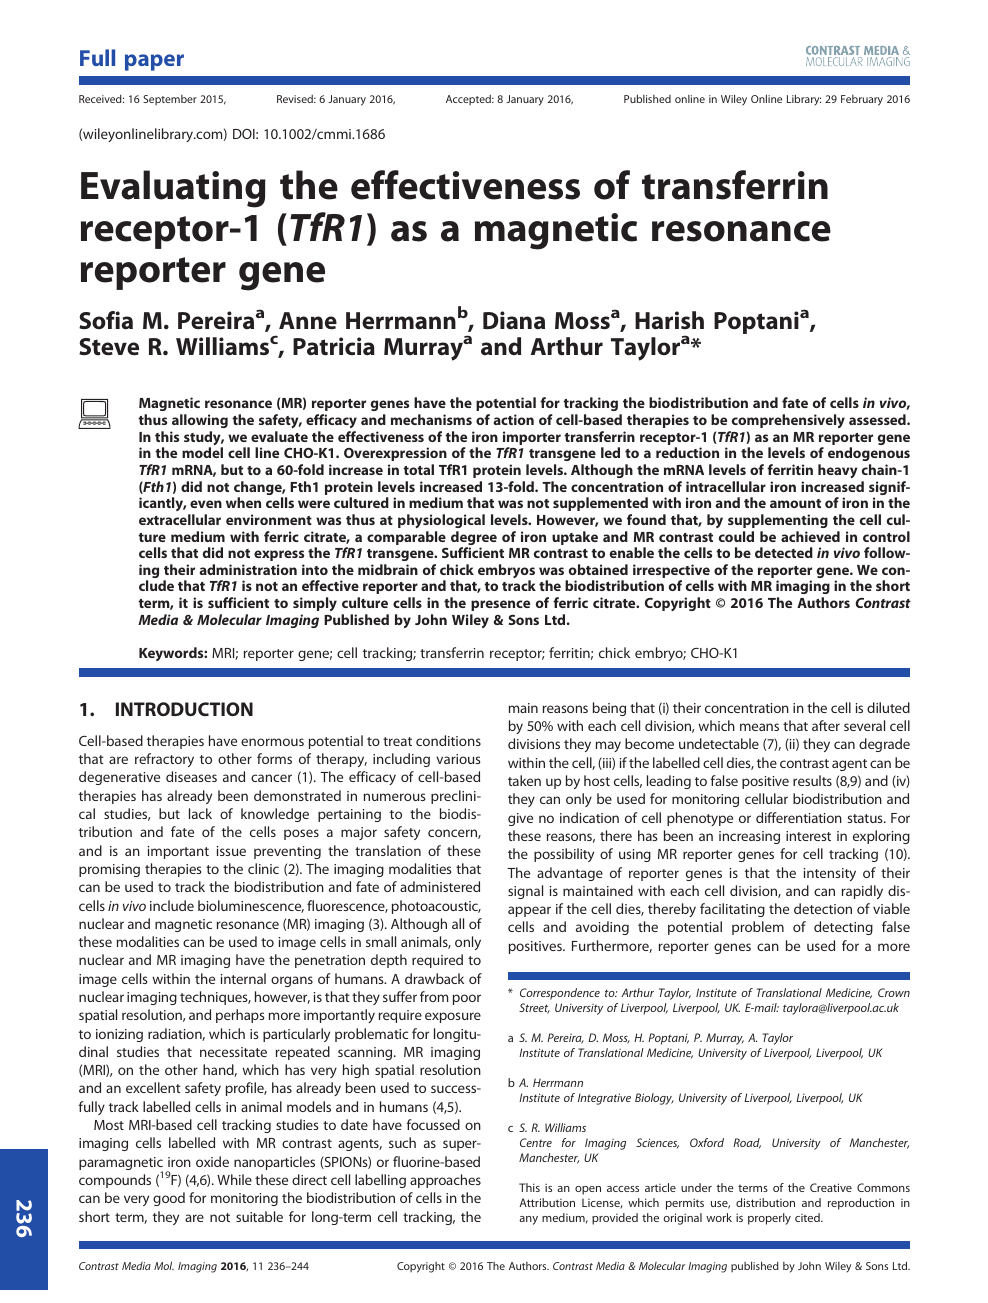 Evaluating The Effectiveness Of Transferrin Receptor 1 TfR1